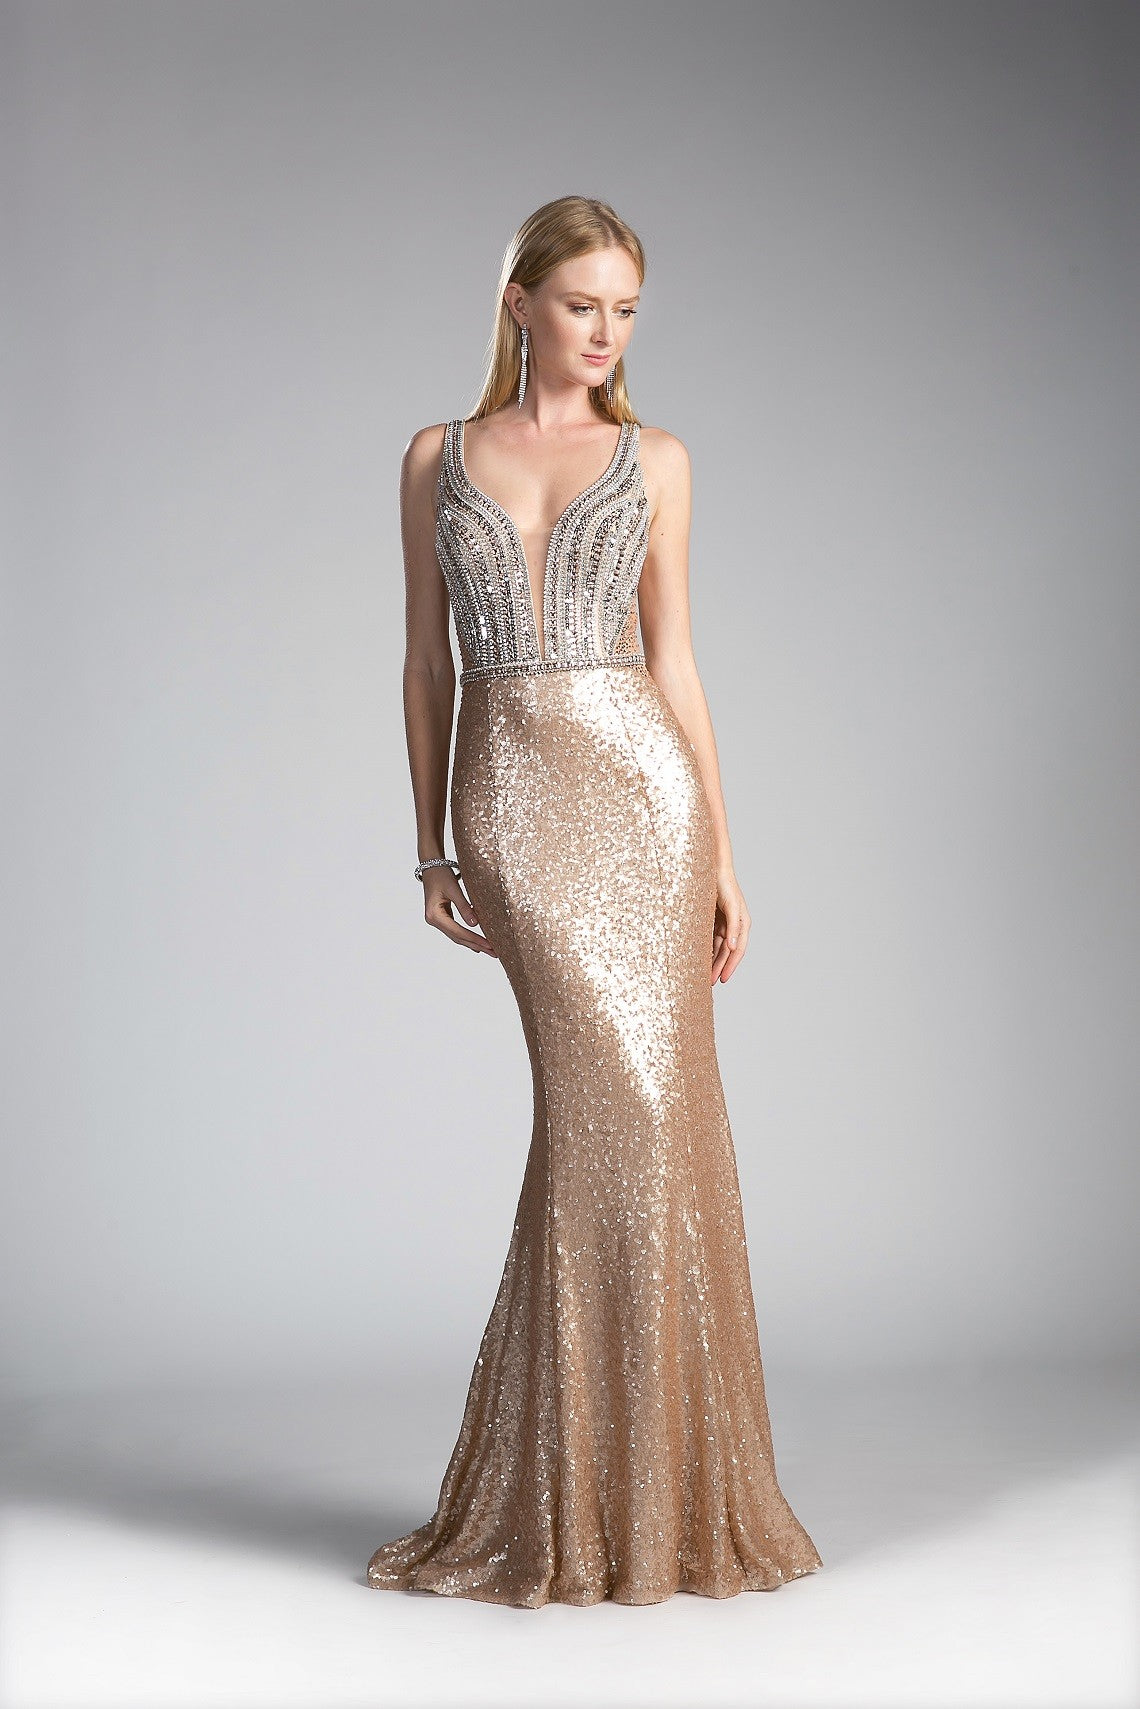 Beaded Bodice Sequin Sheath Dress - Fashdime